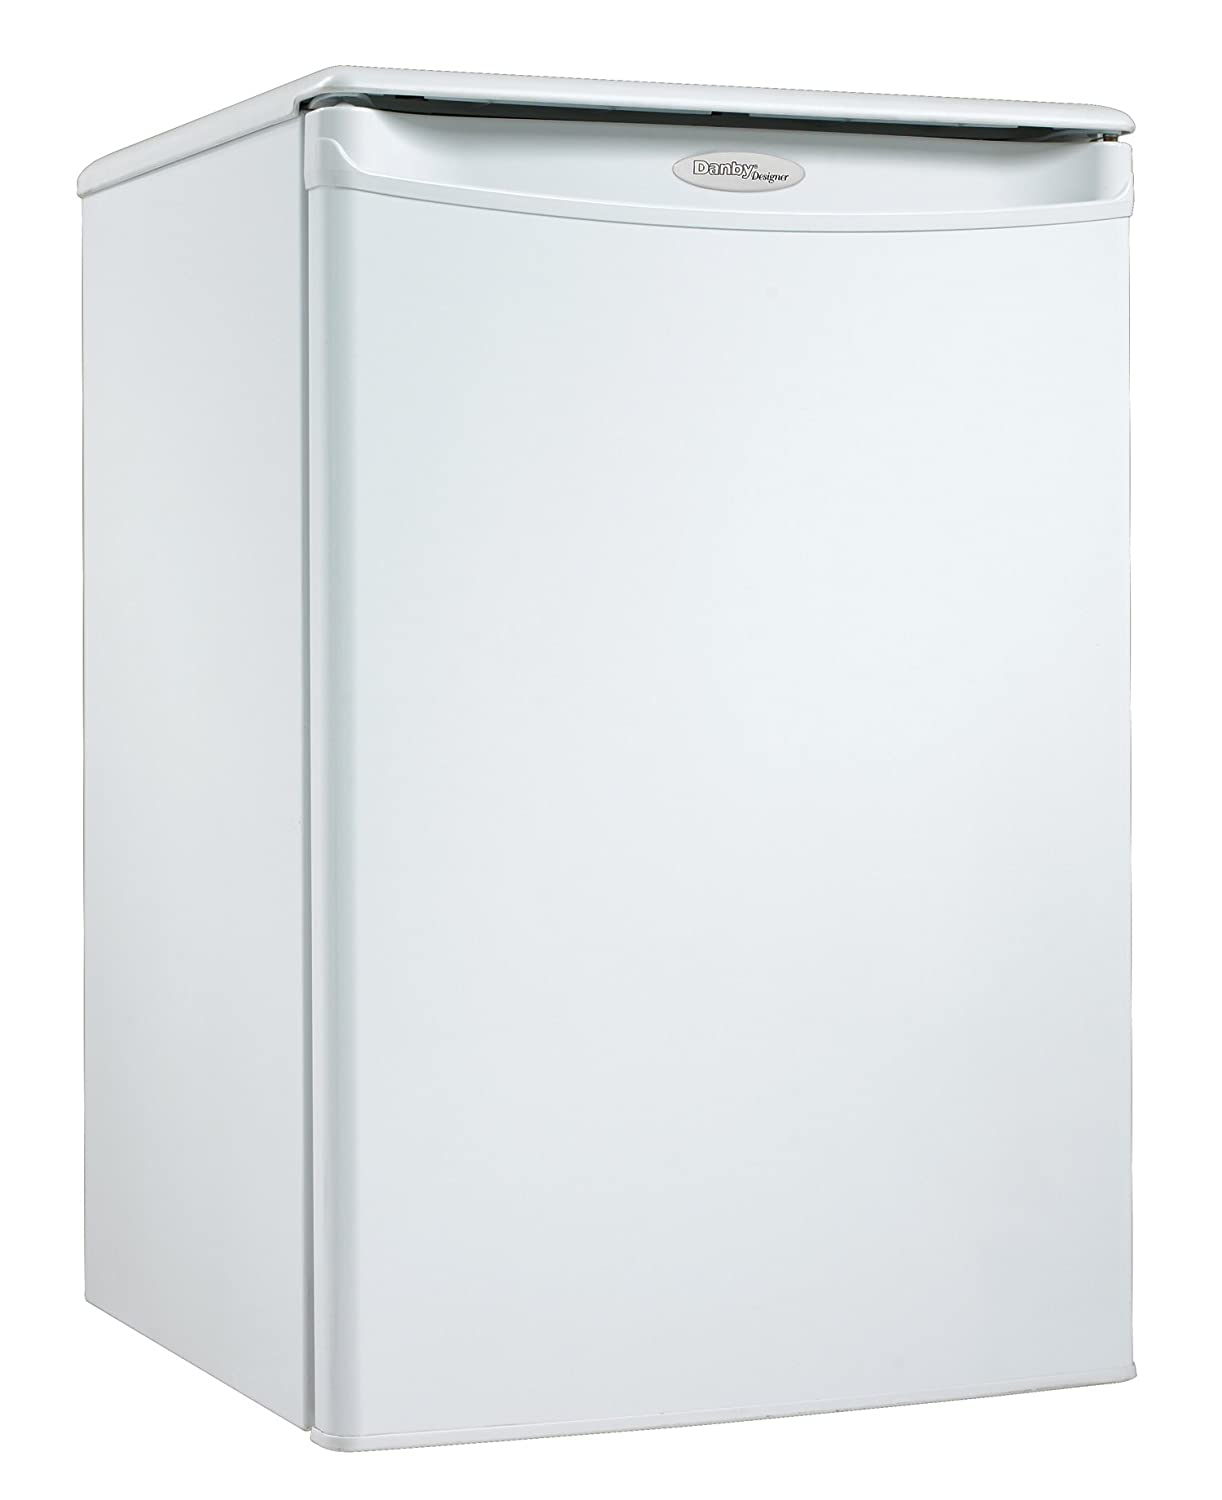 Danby Designer DAR026A1WDD Compact All Refrigerator, 2.6-Cubic Feet, White